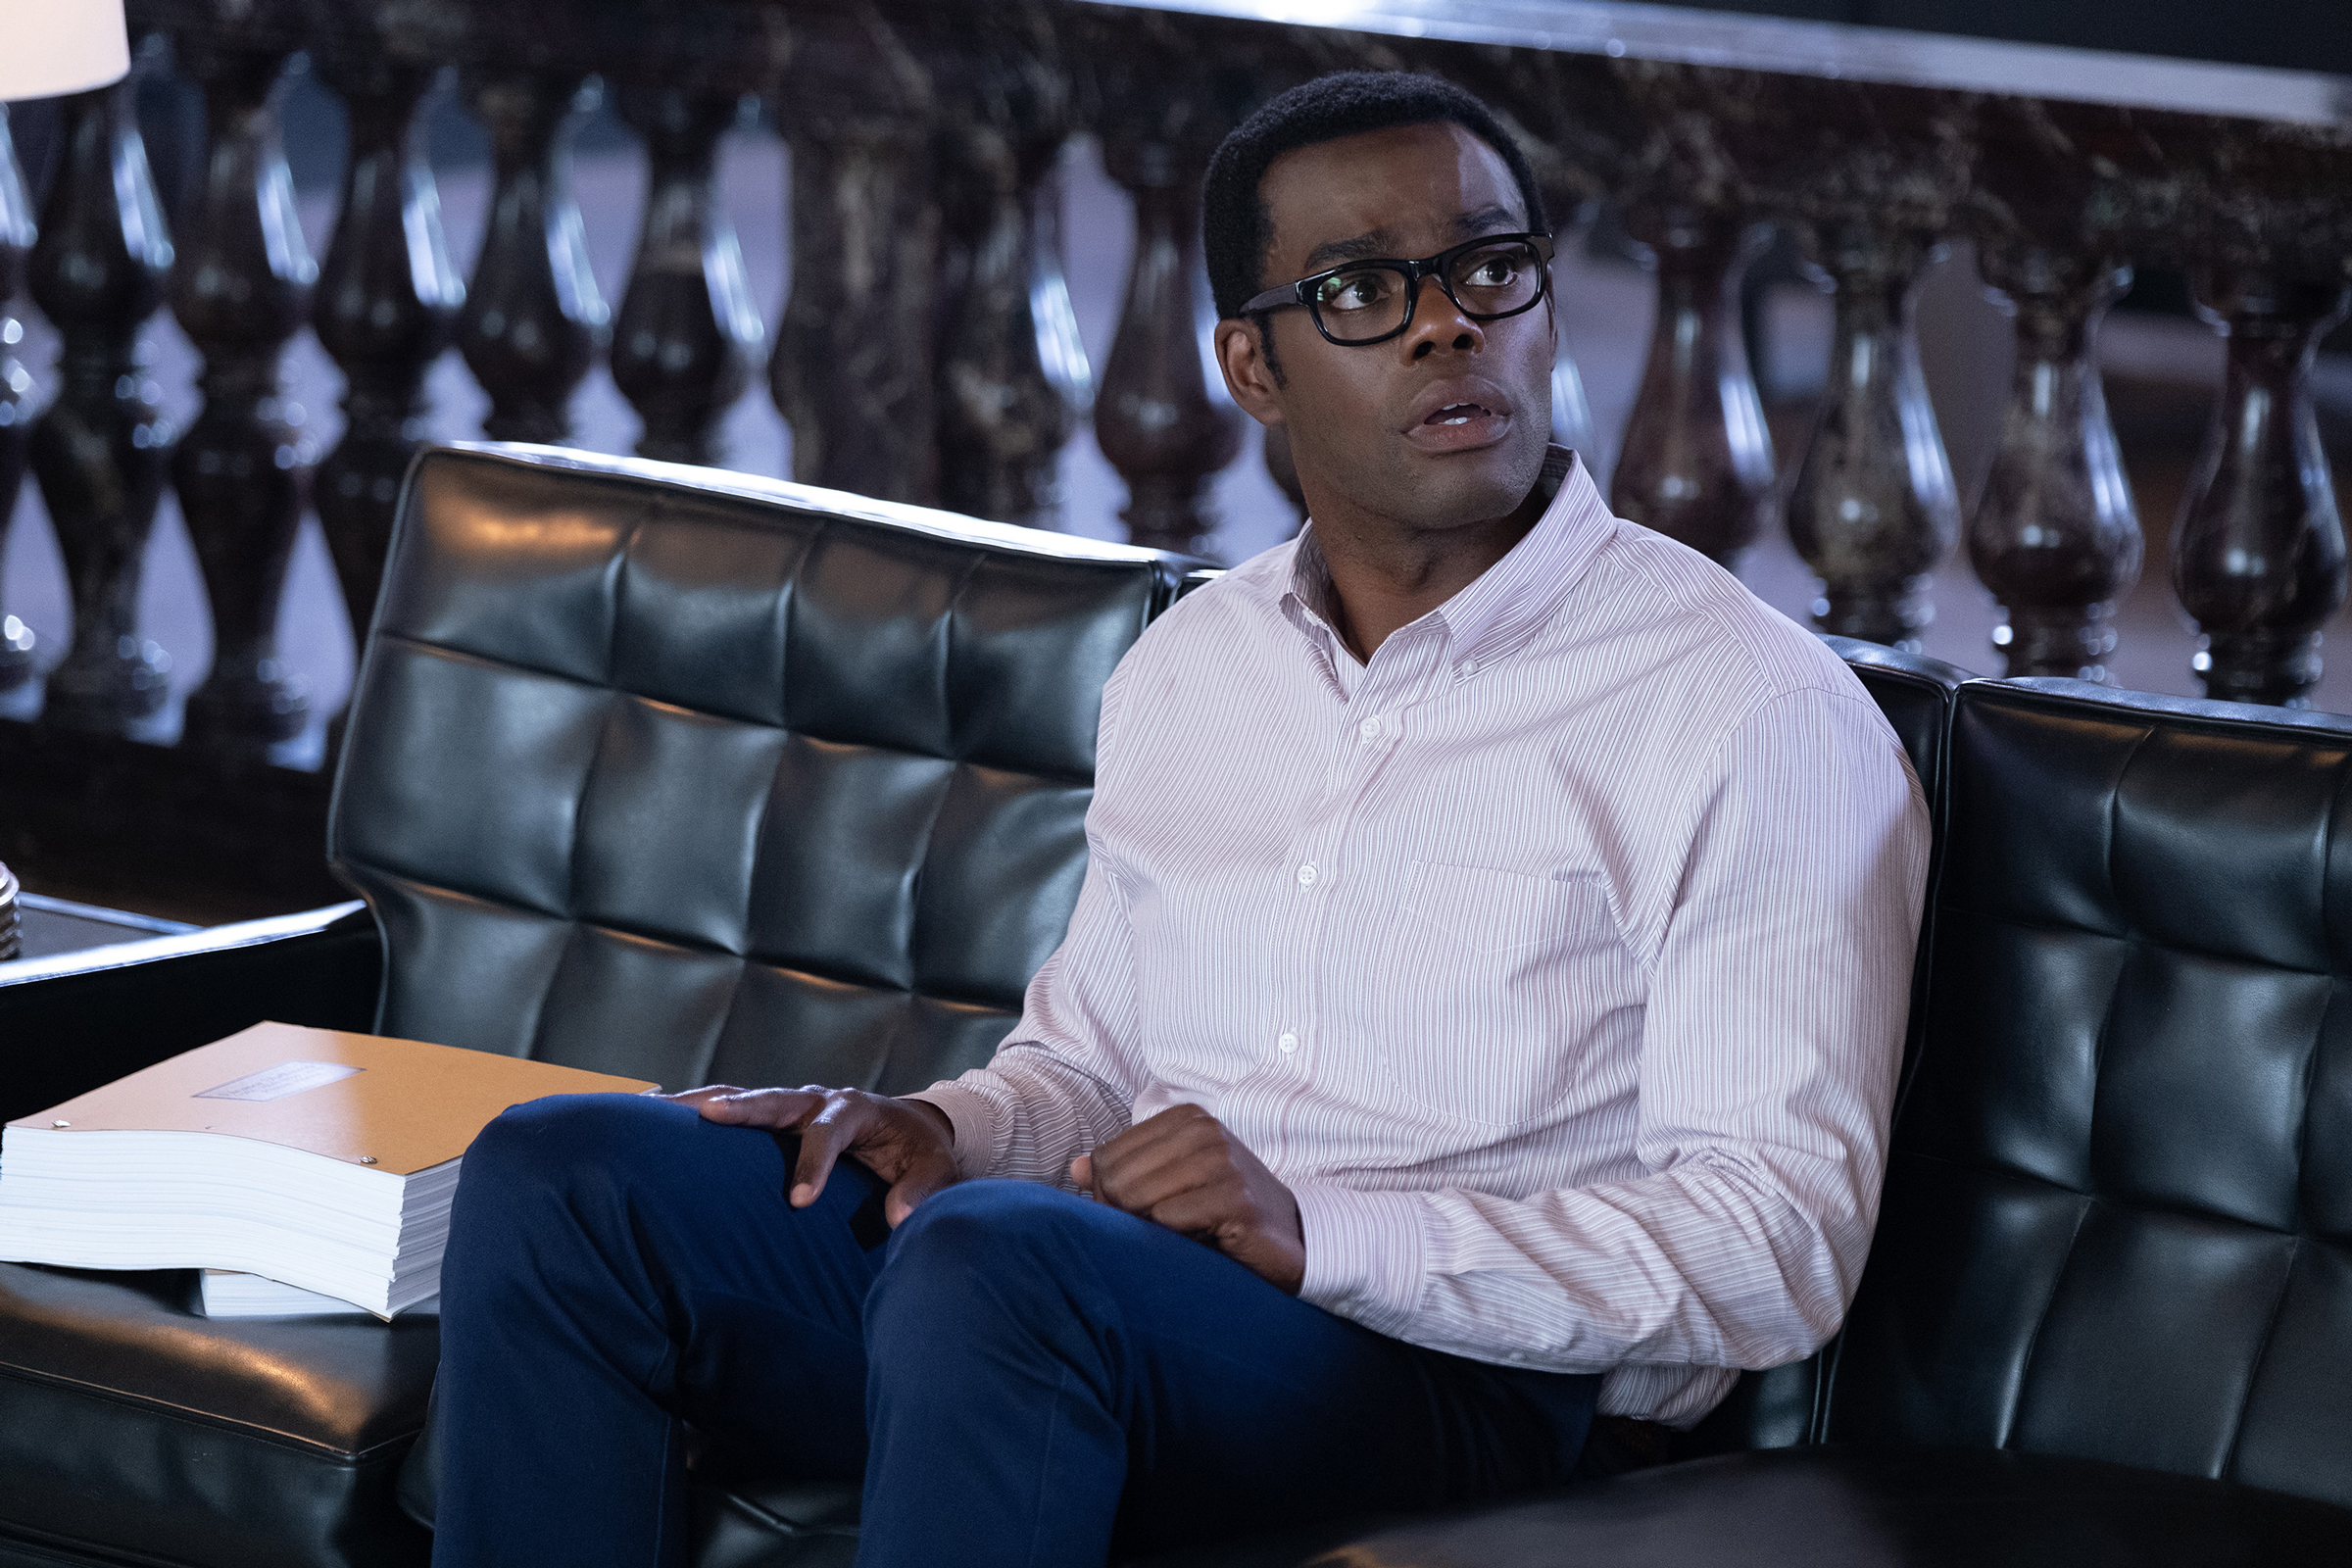 'The Good Place' Recap: There's the Rub